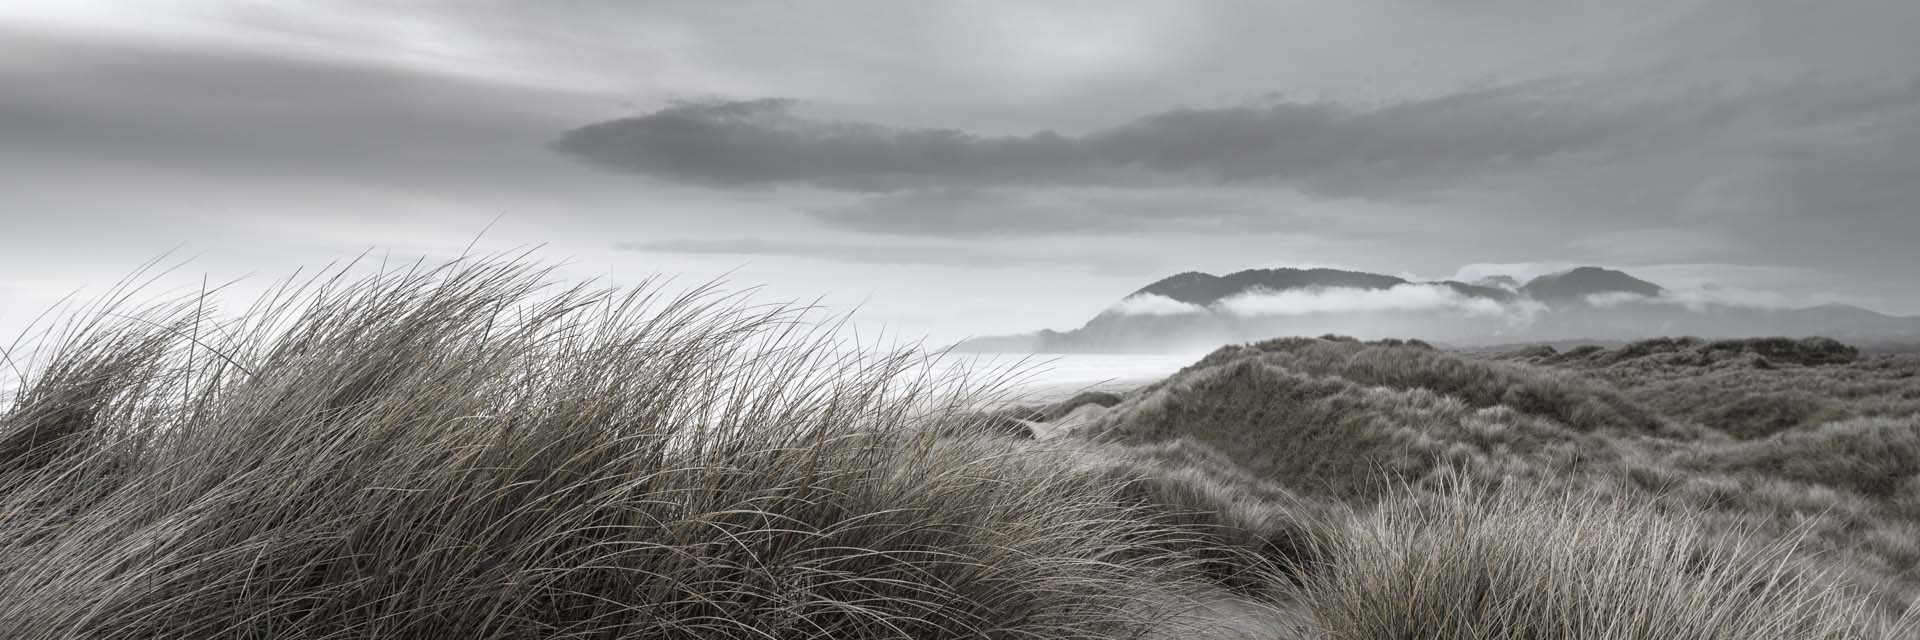 Coastal Dunes at Dusk, copyright © Don Schwartz